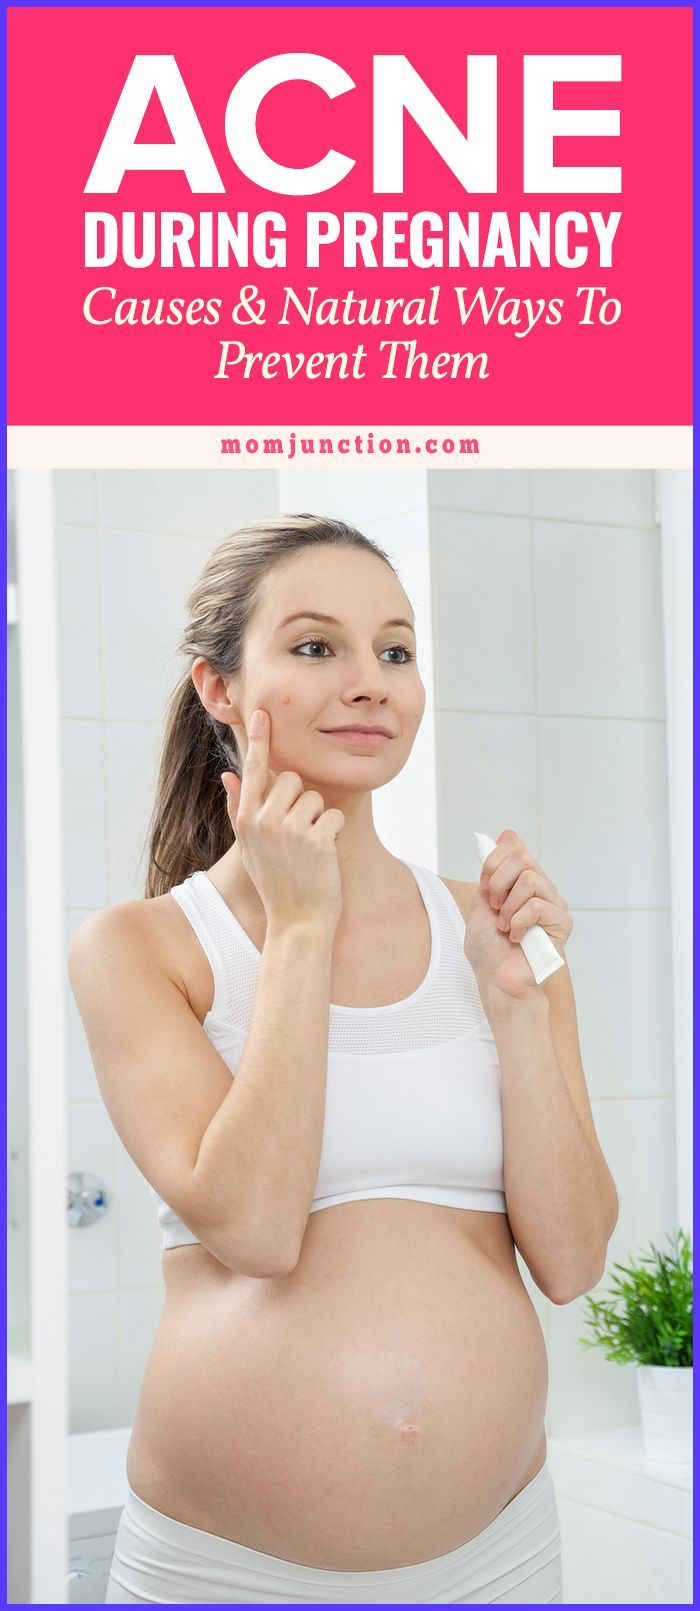 how to help acne during pregnancy